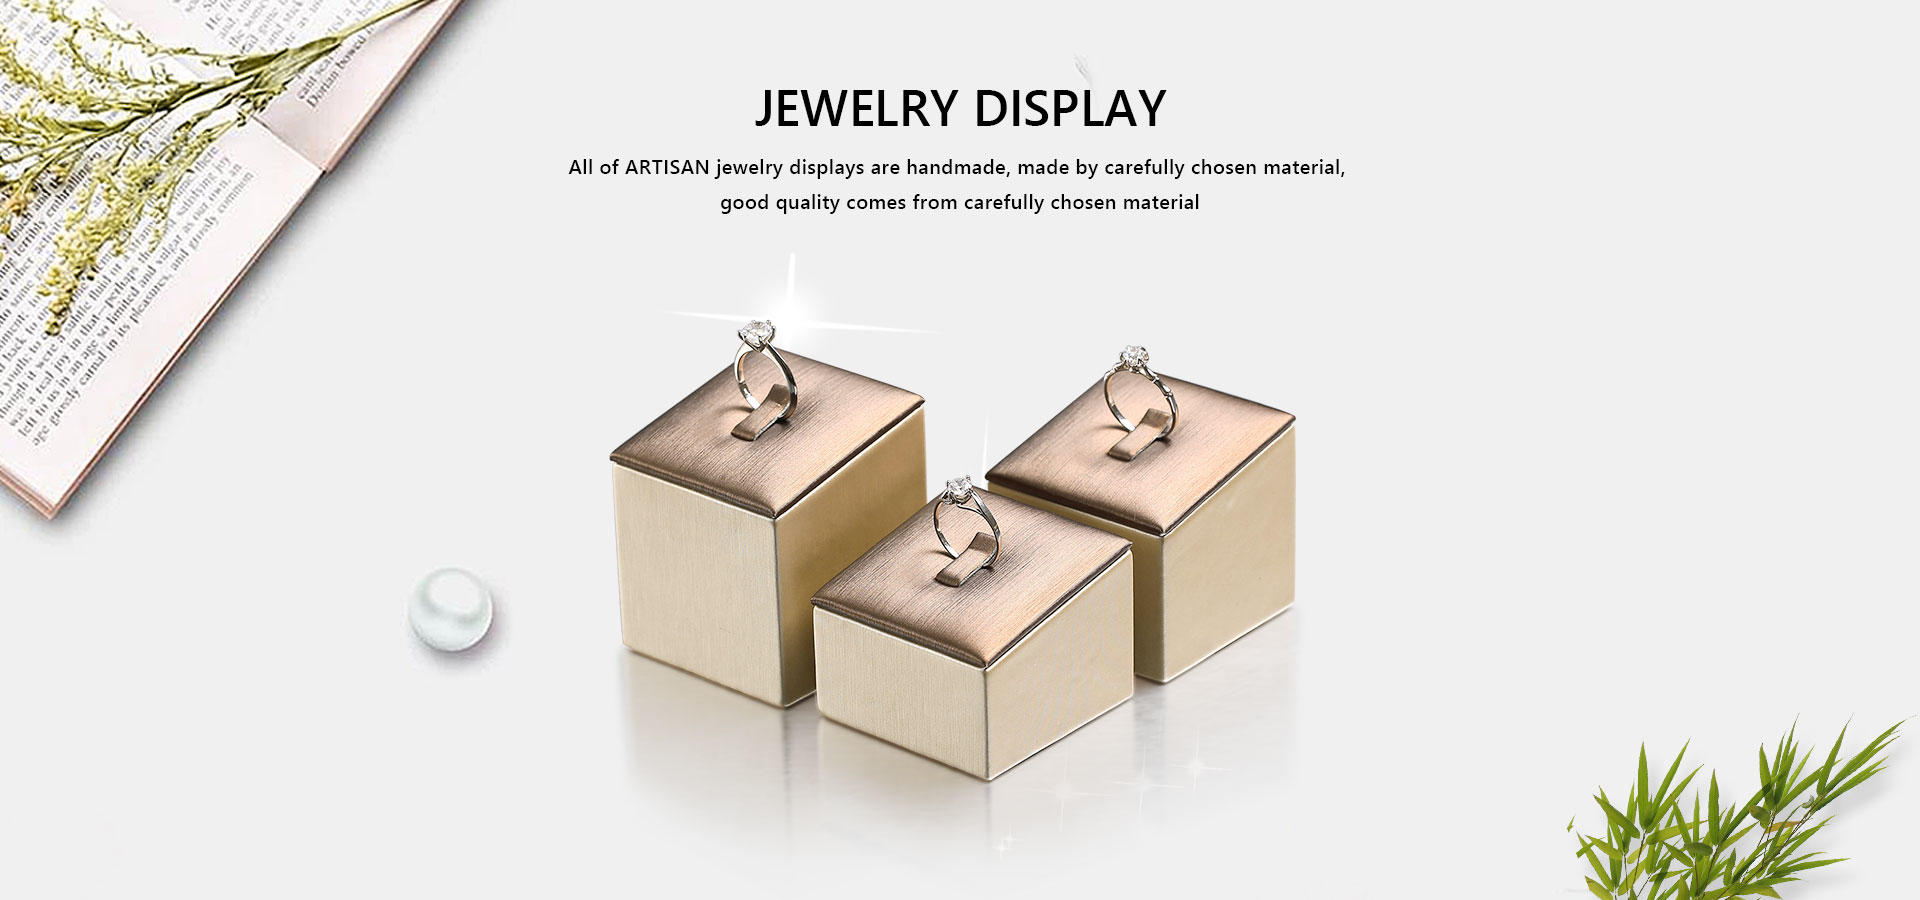 long Jewelry Rings Insert Display Stand manufacturer for counter top display Artisan